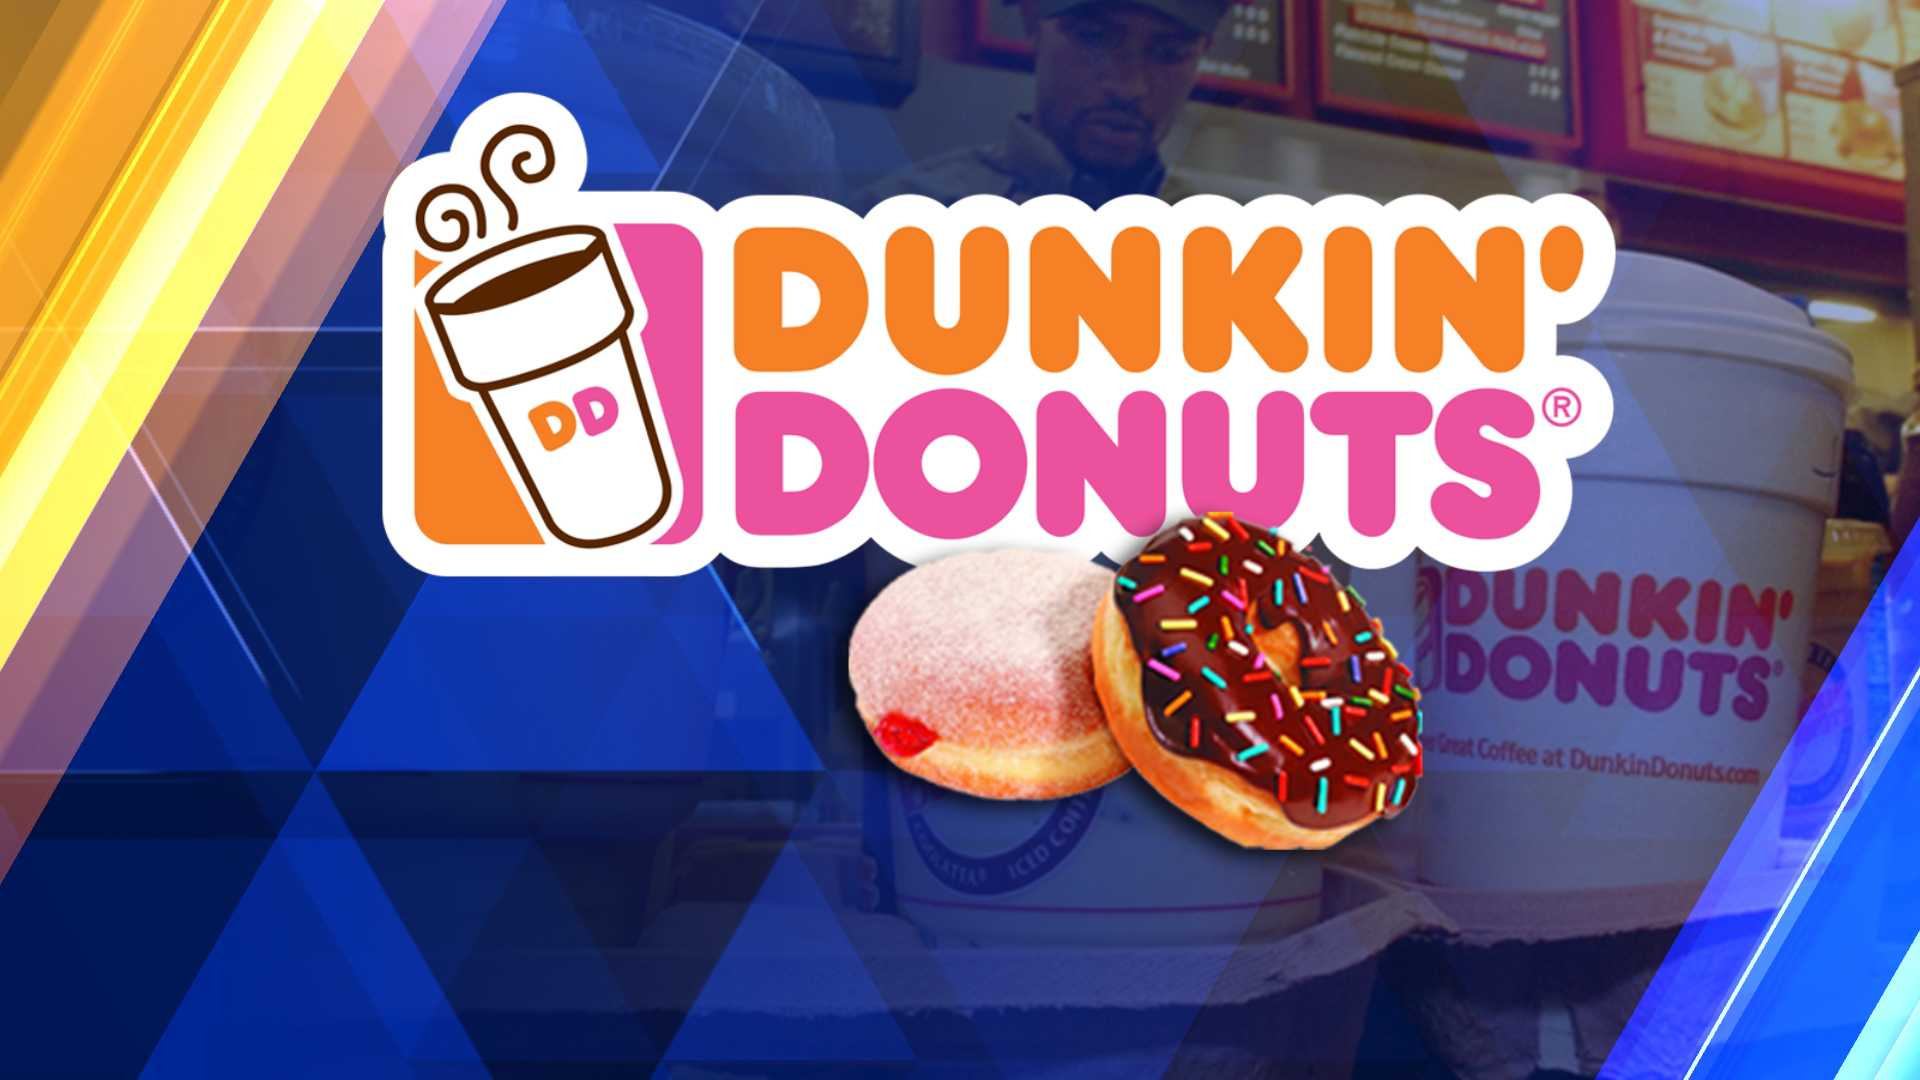 You can get a Frozen Dunkin' Coffee for free today